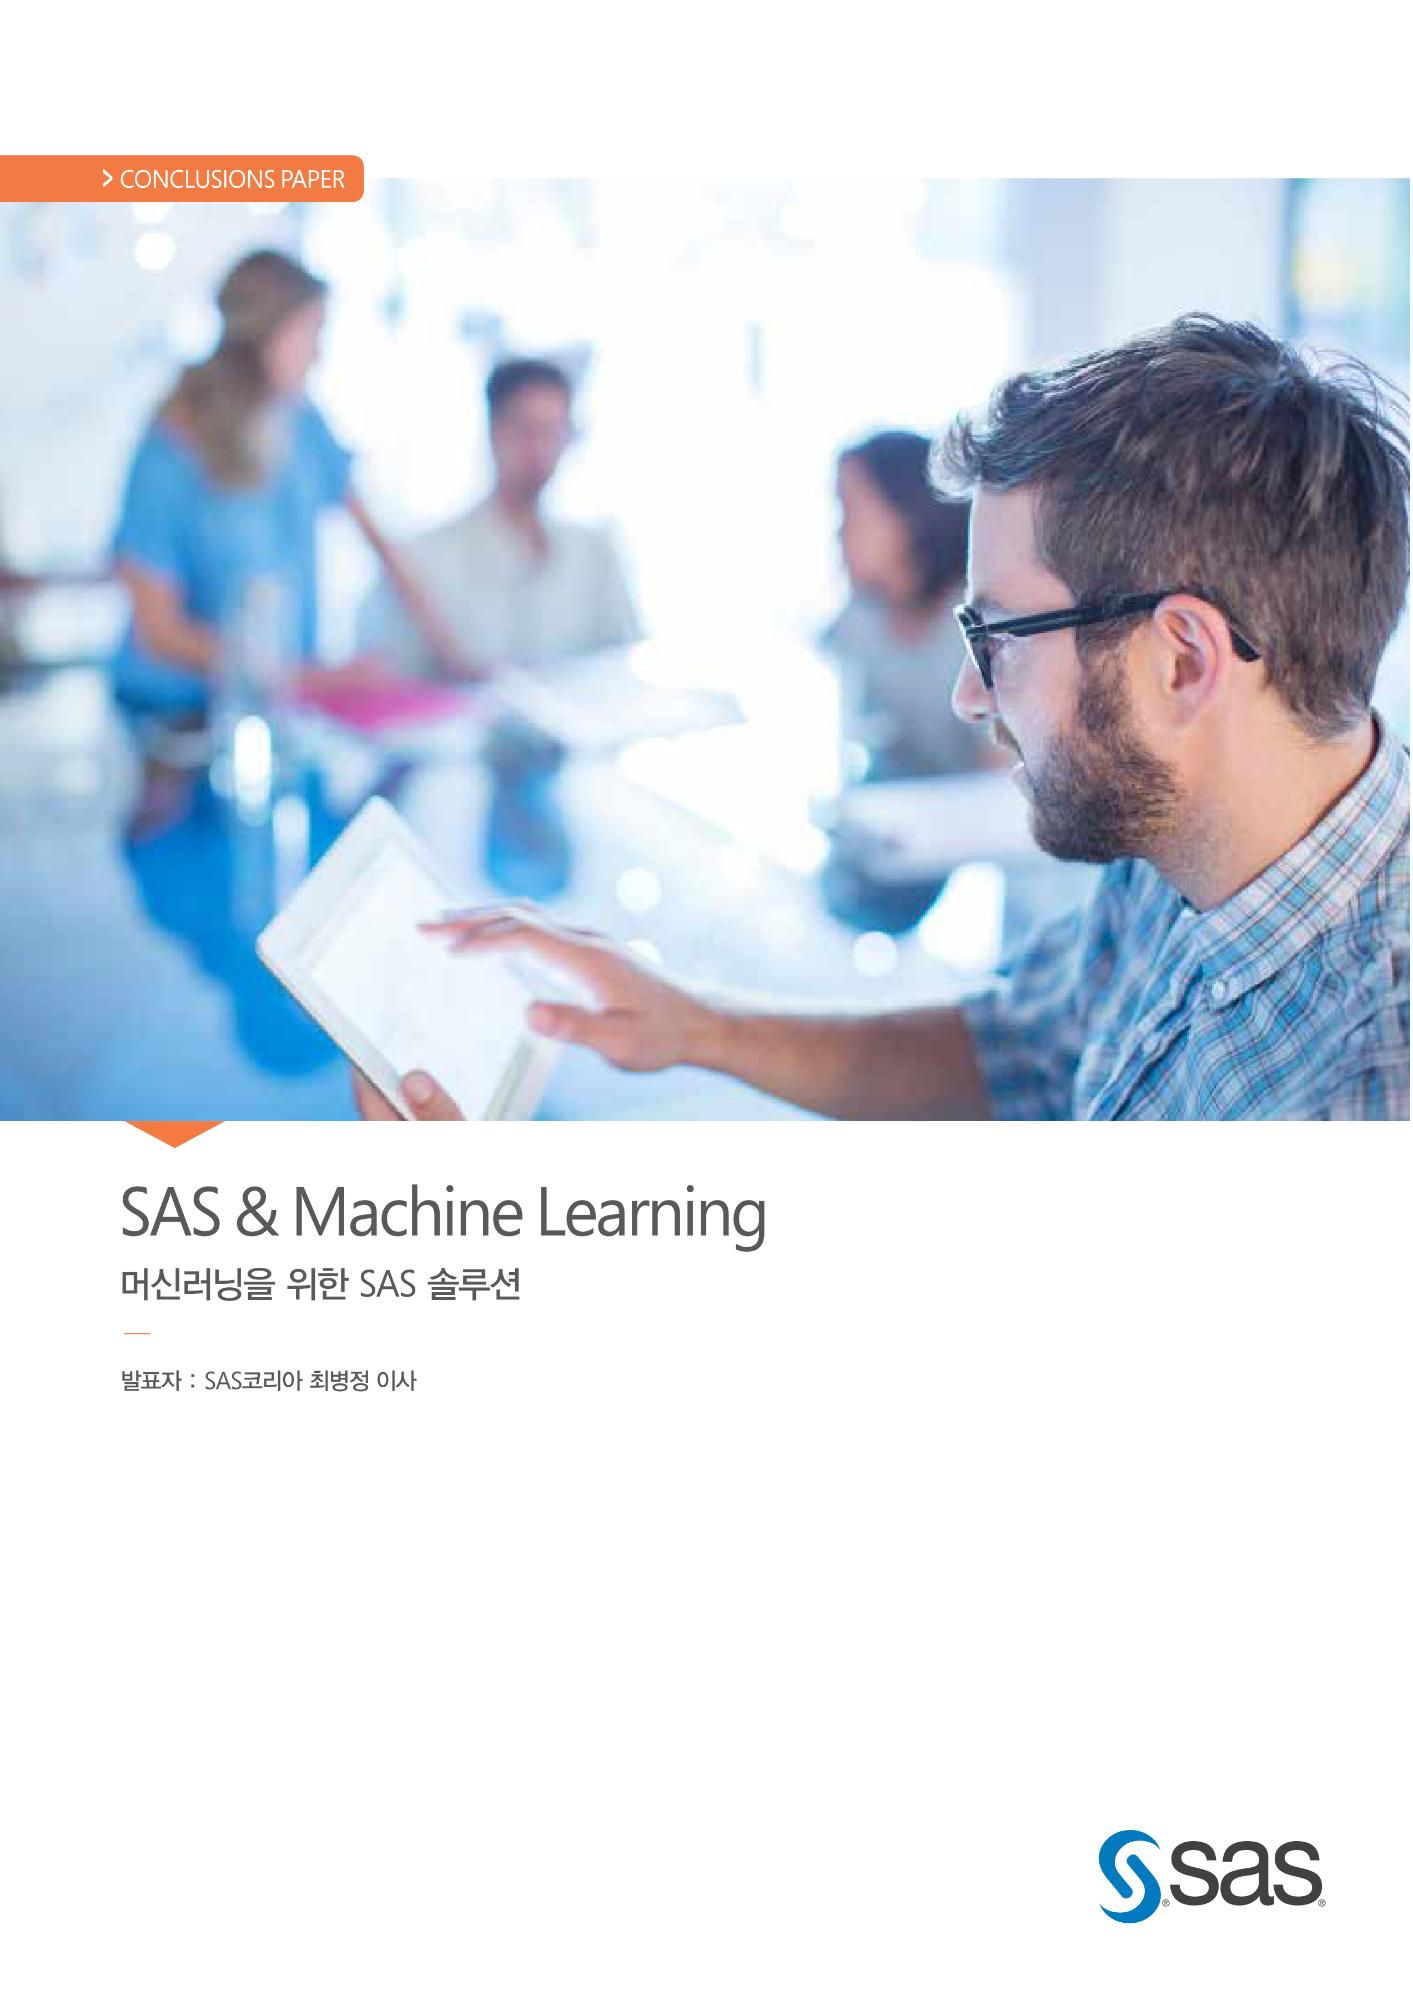 SAS & Machine Learning